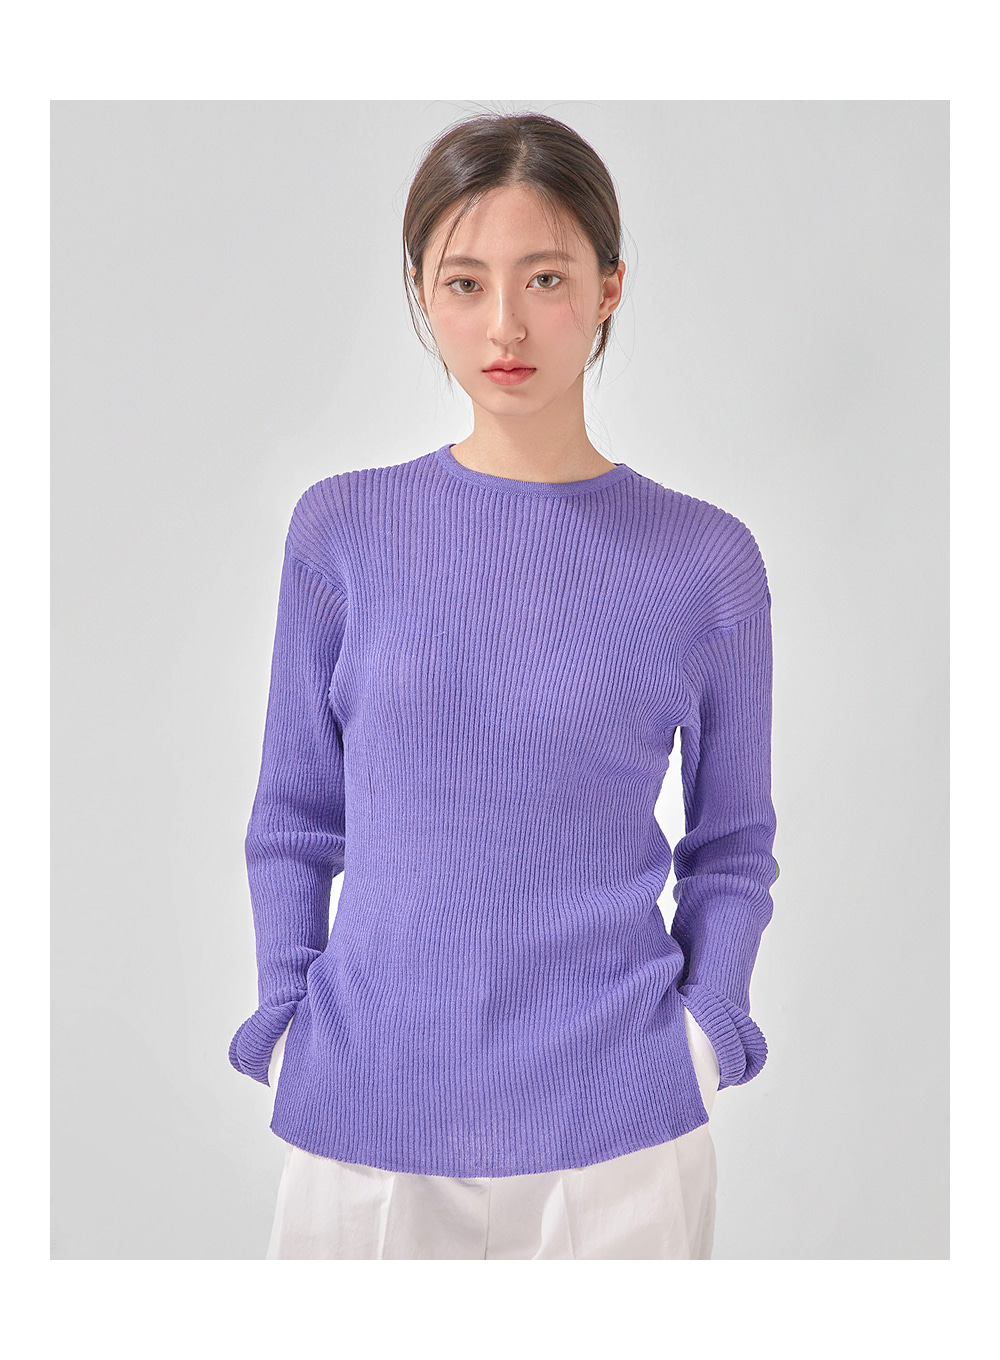 minute see through knit